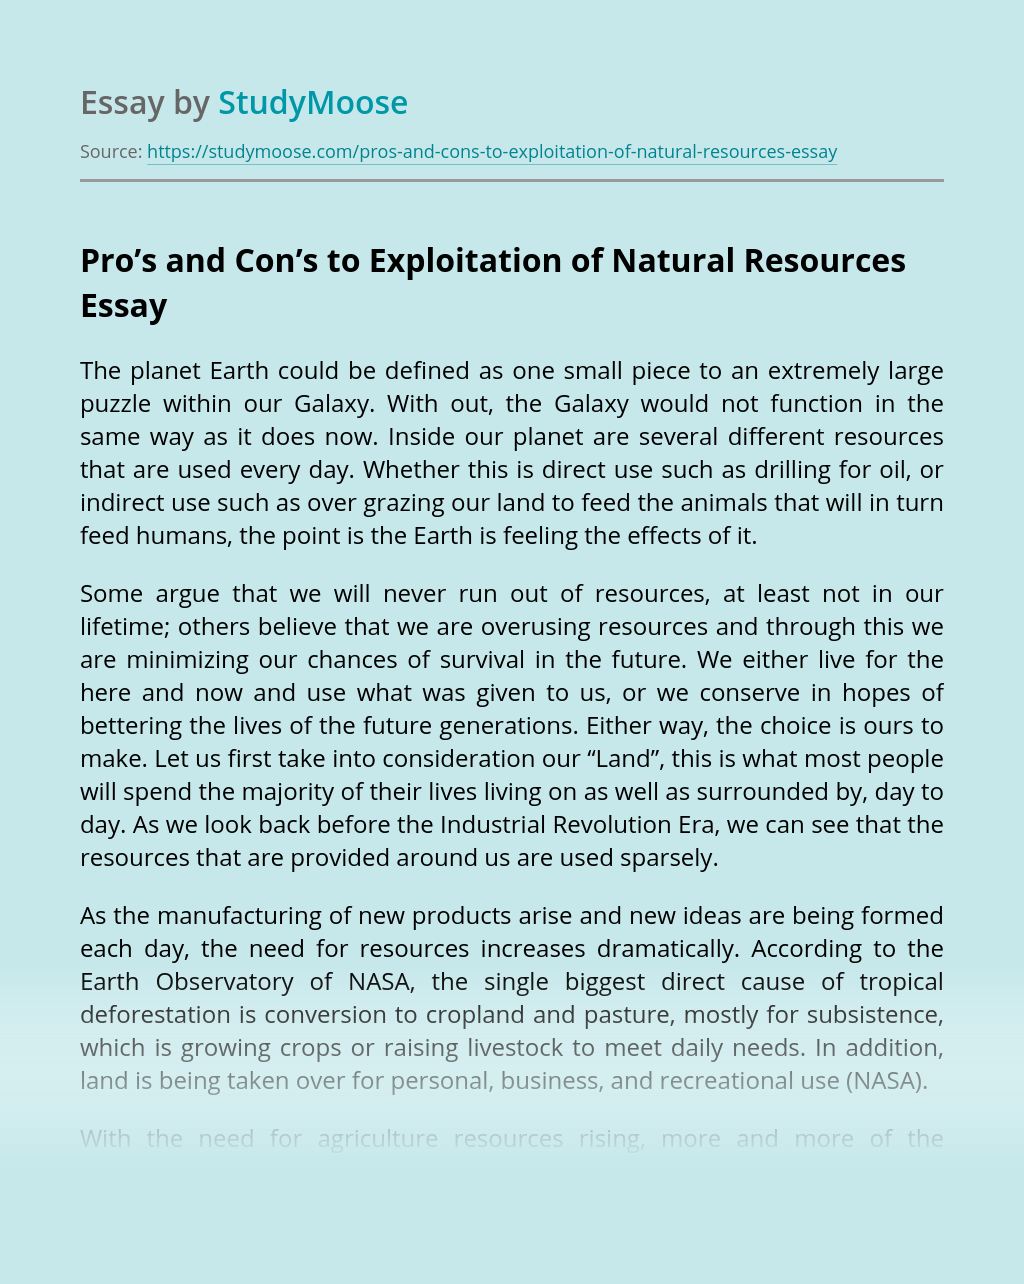 Pro's and Con's to Exploitation of Natural Resources